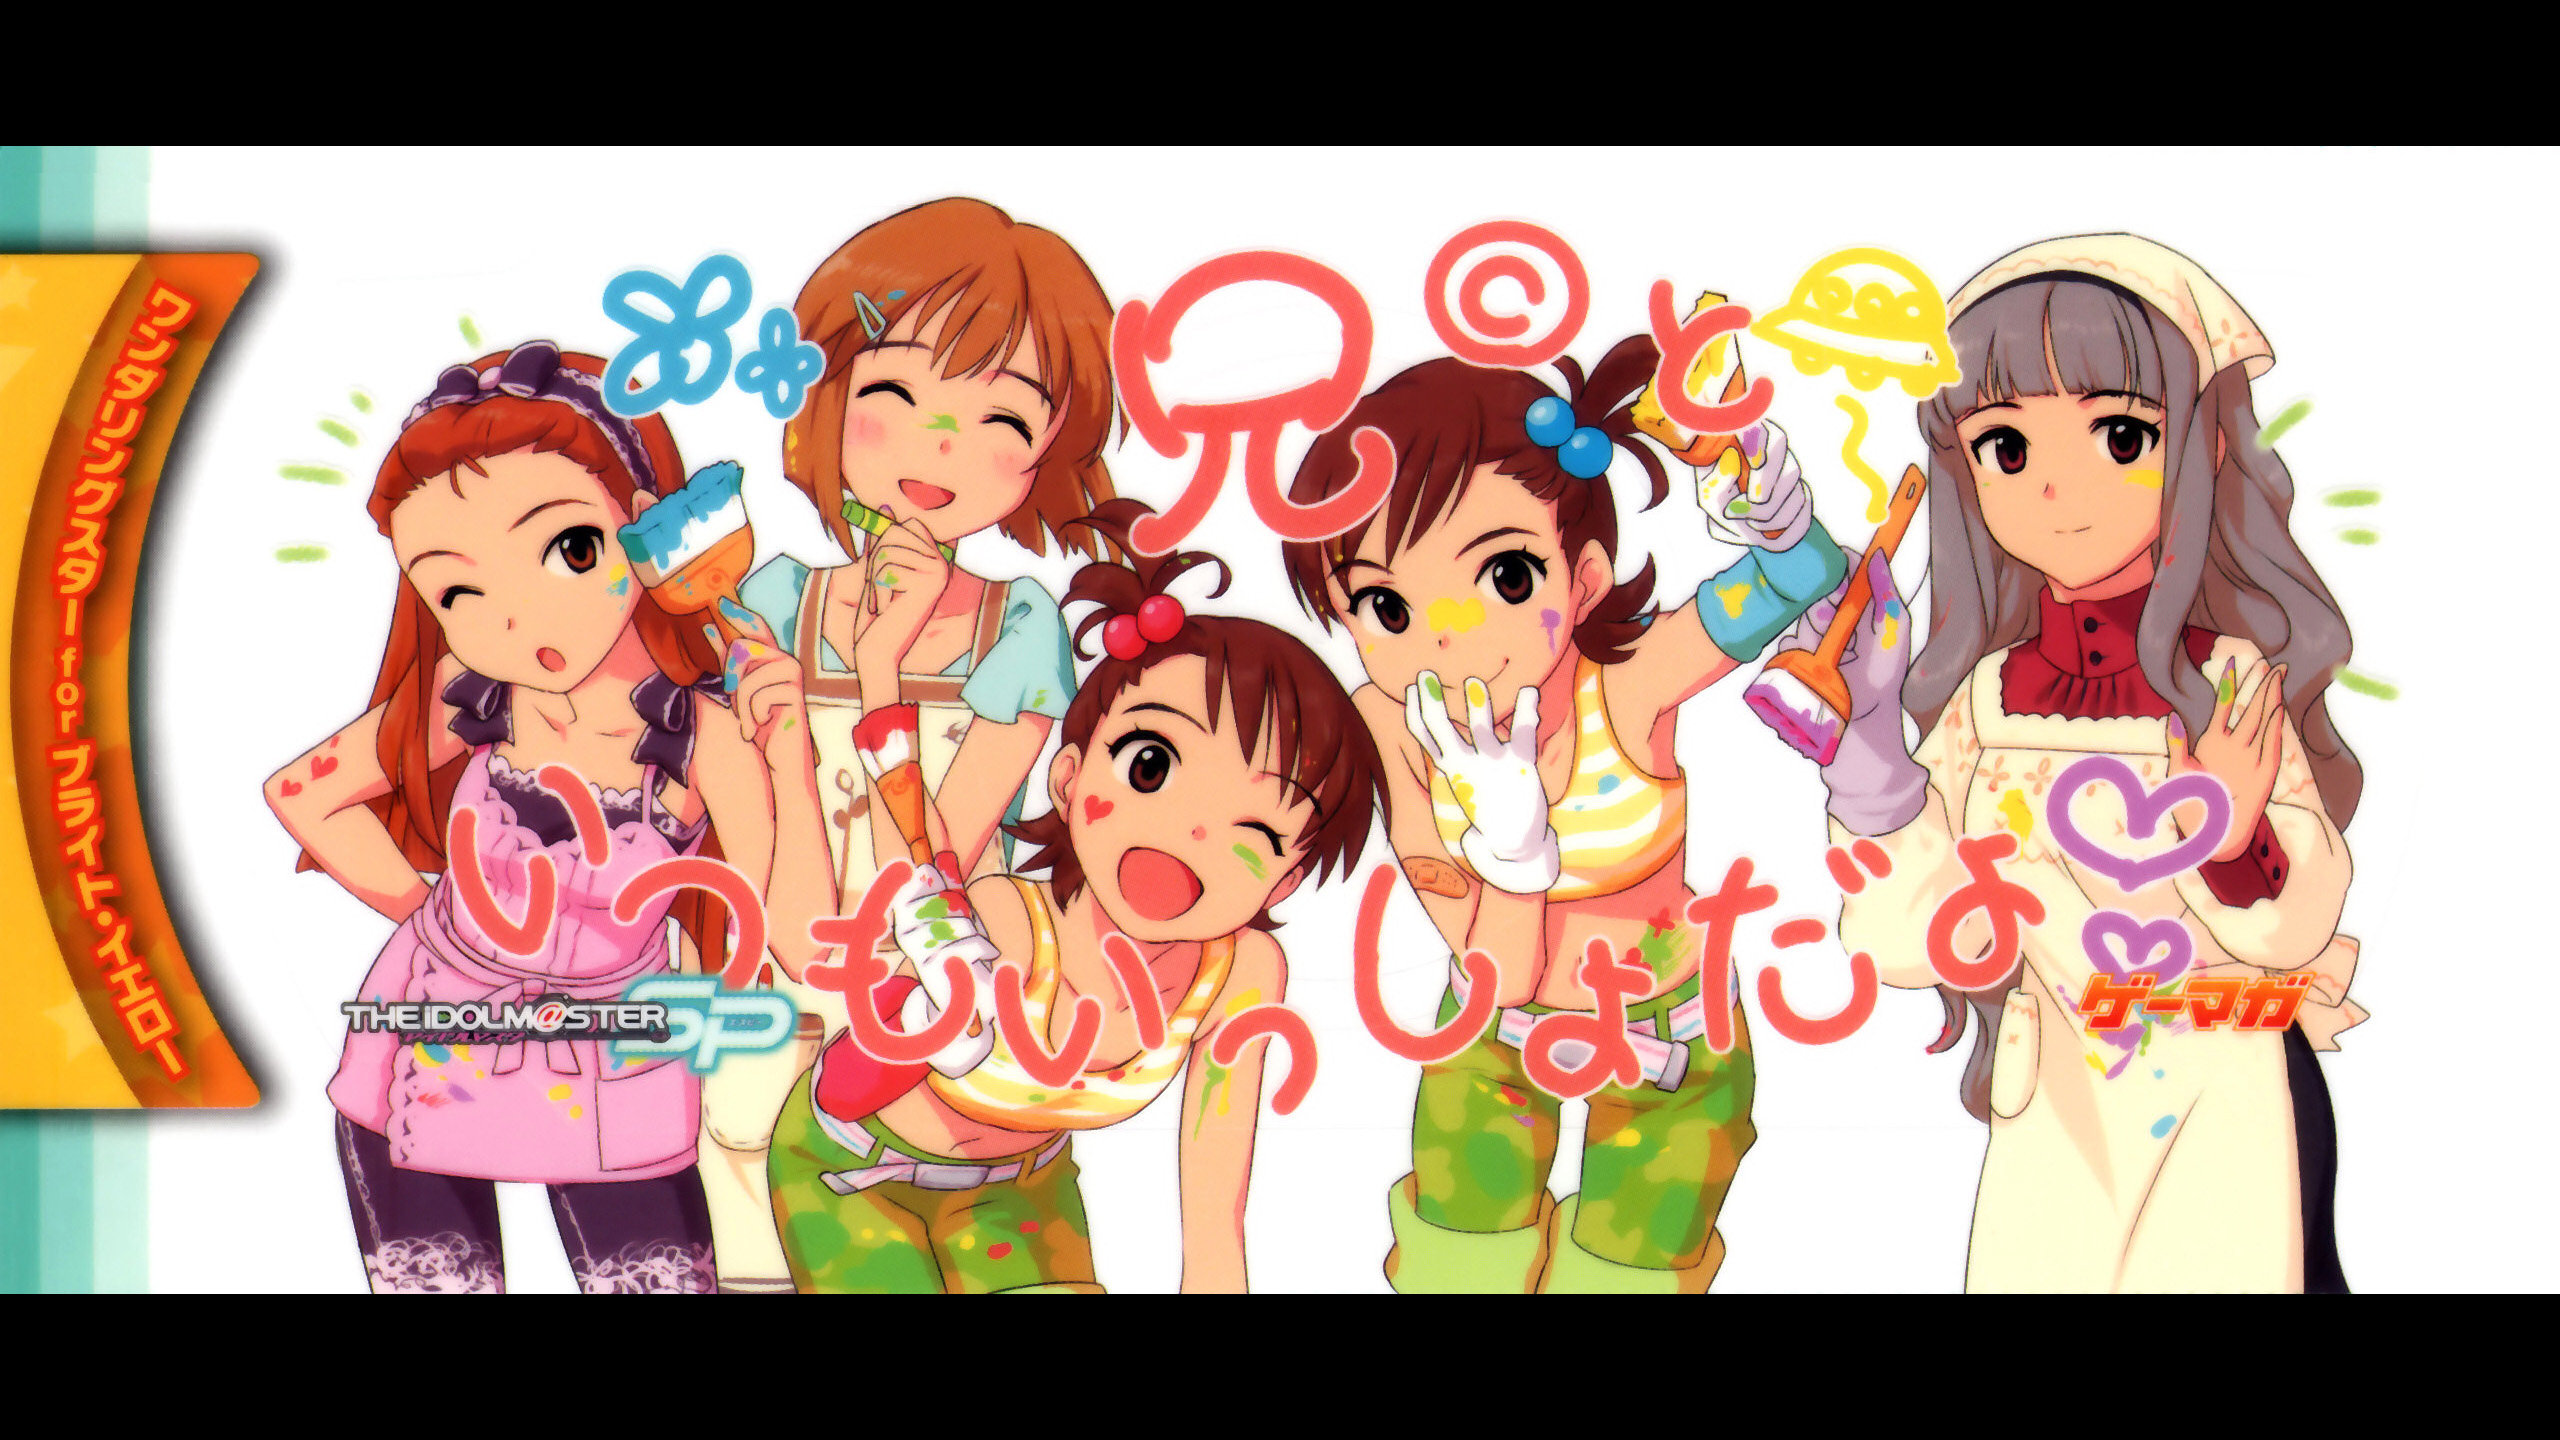 Download hd 2560x1440 IDOLM@STER desktop background ID:82612 for free